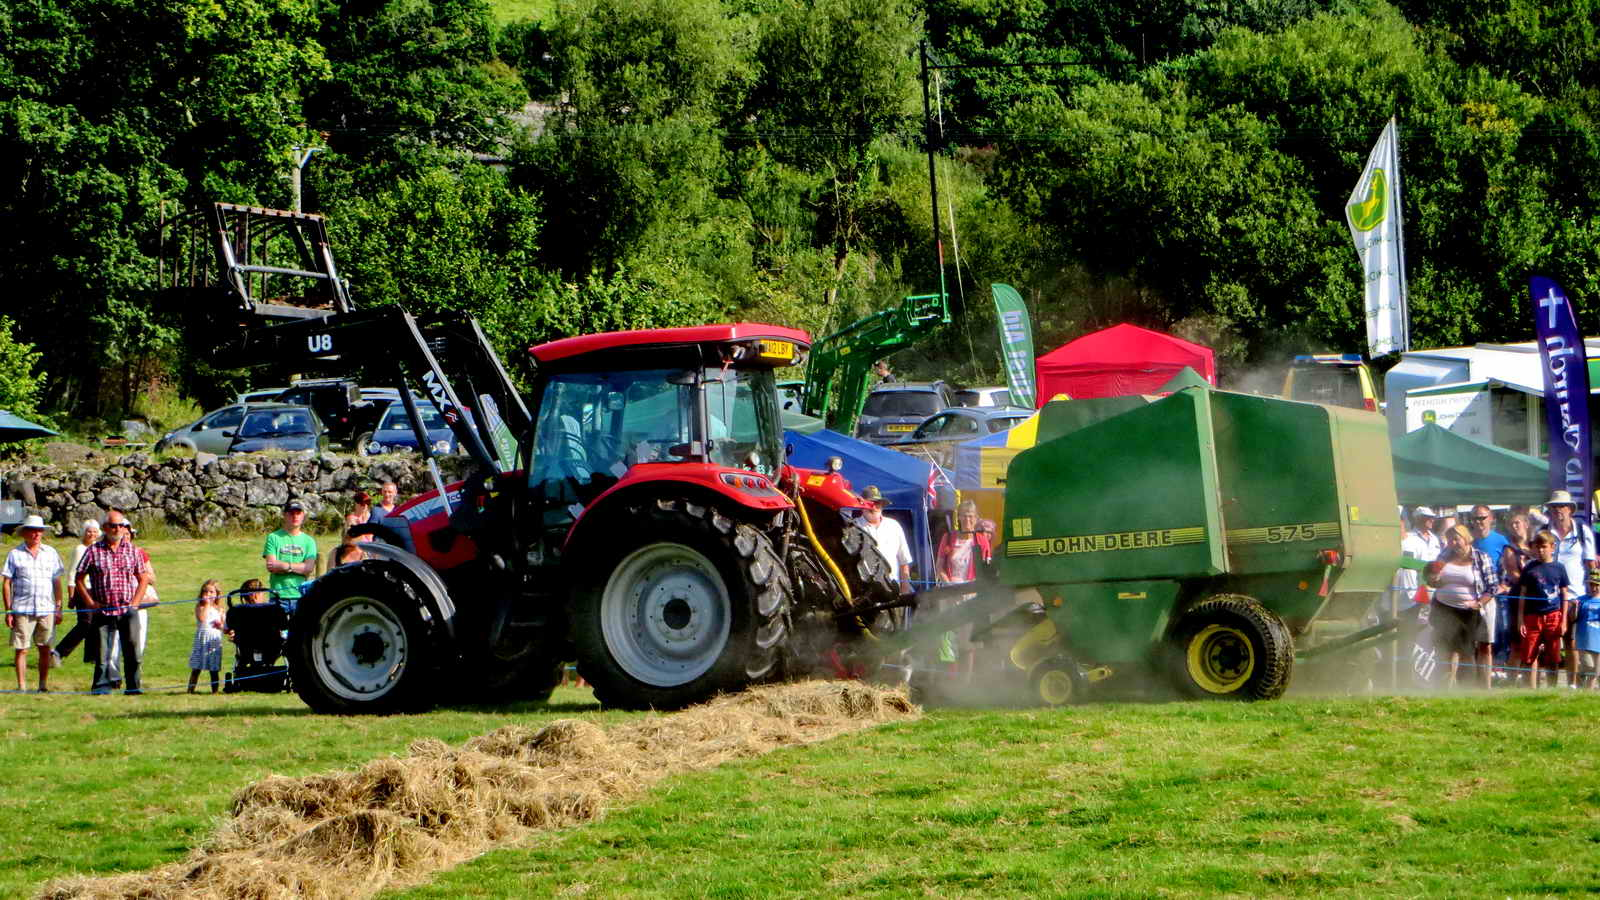 Tractor baling demonstration